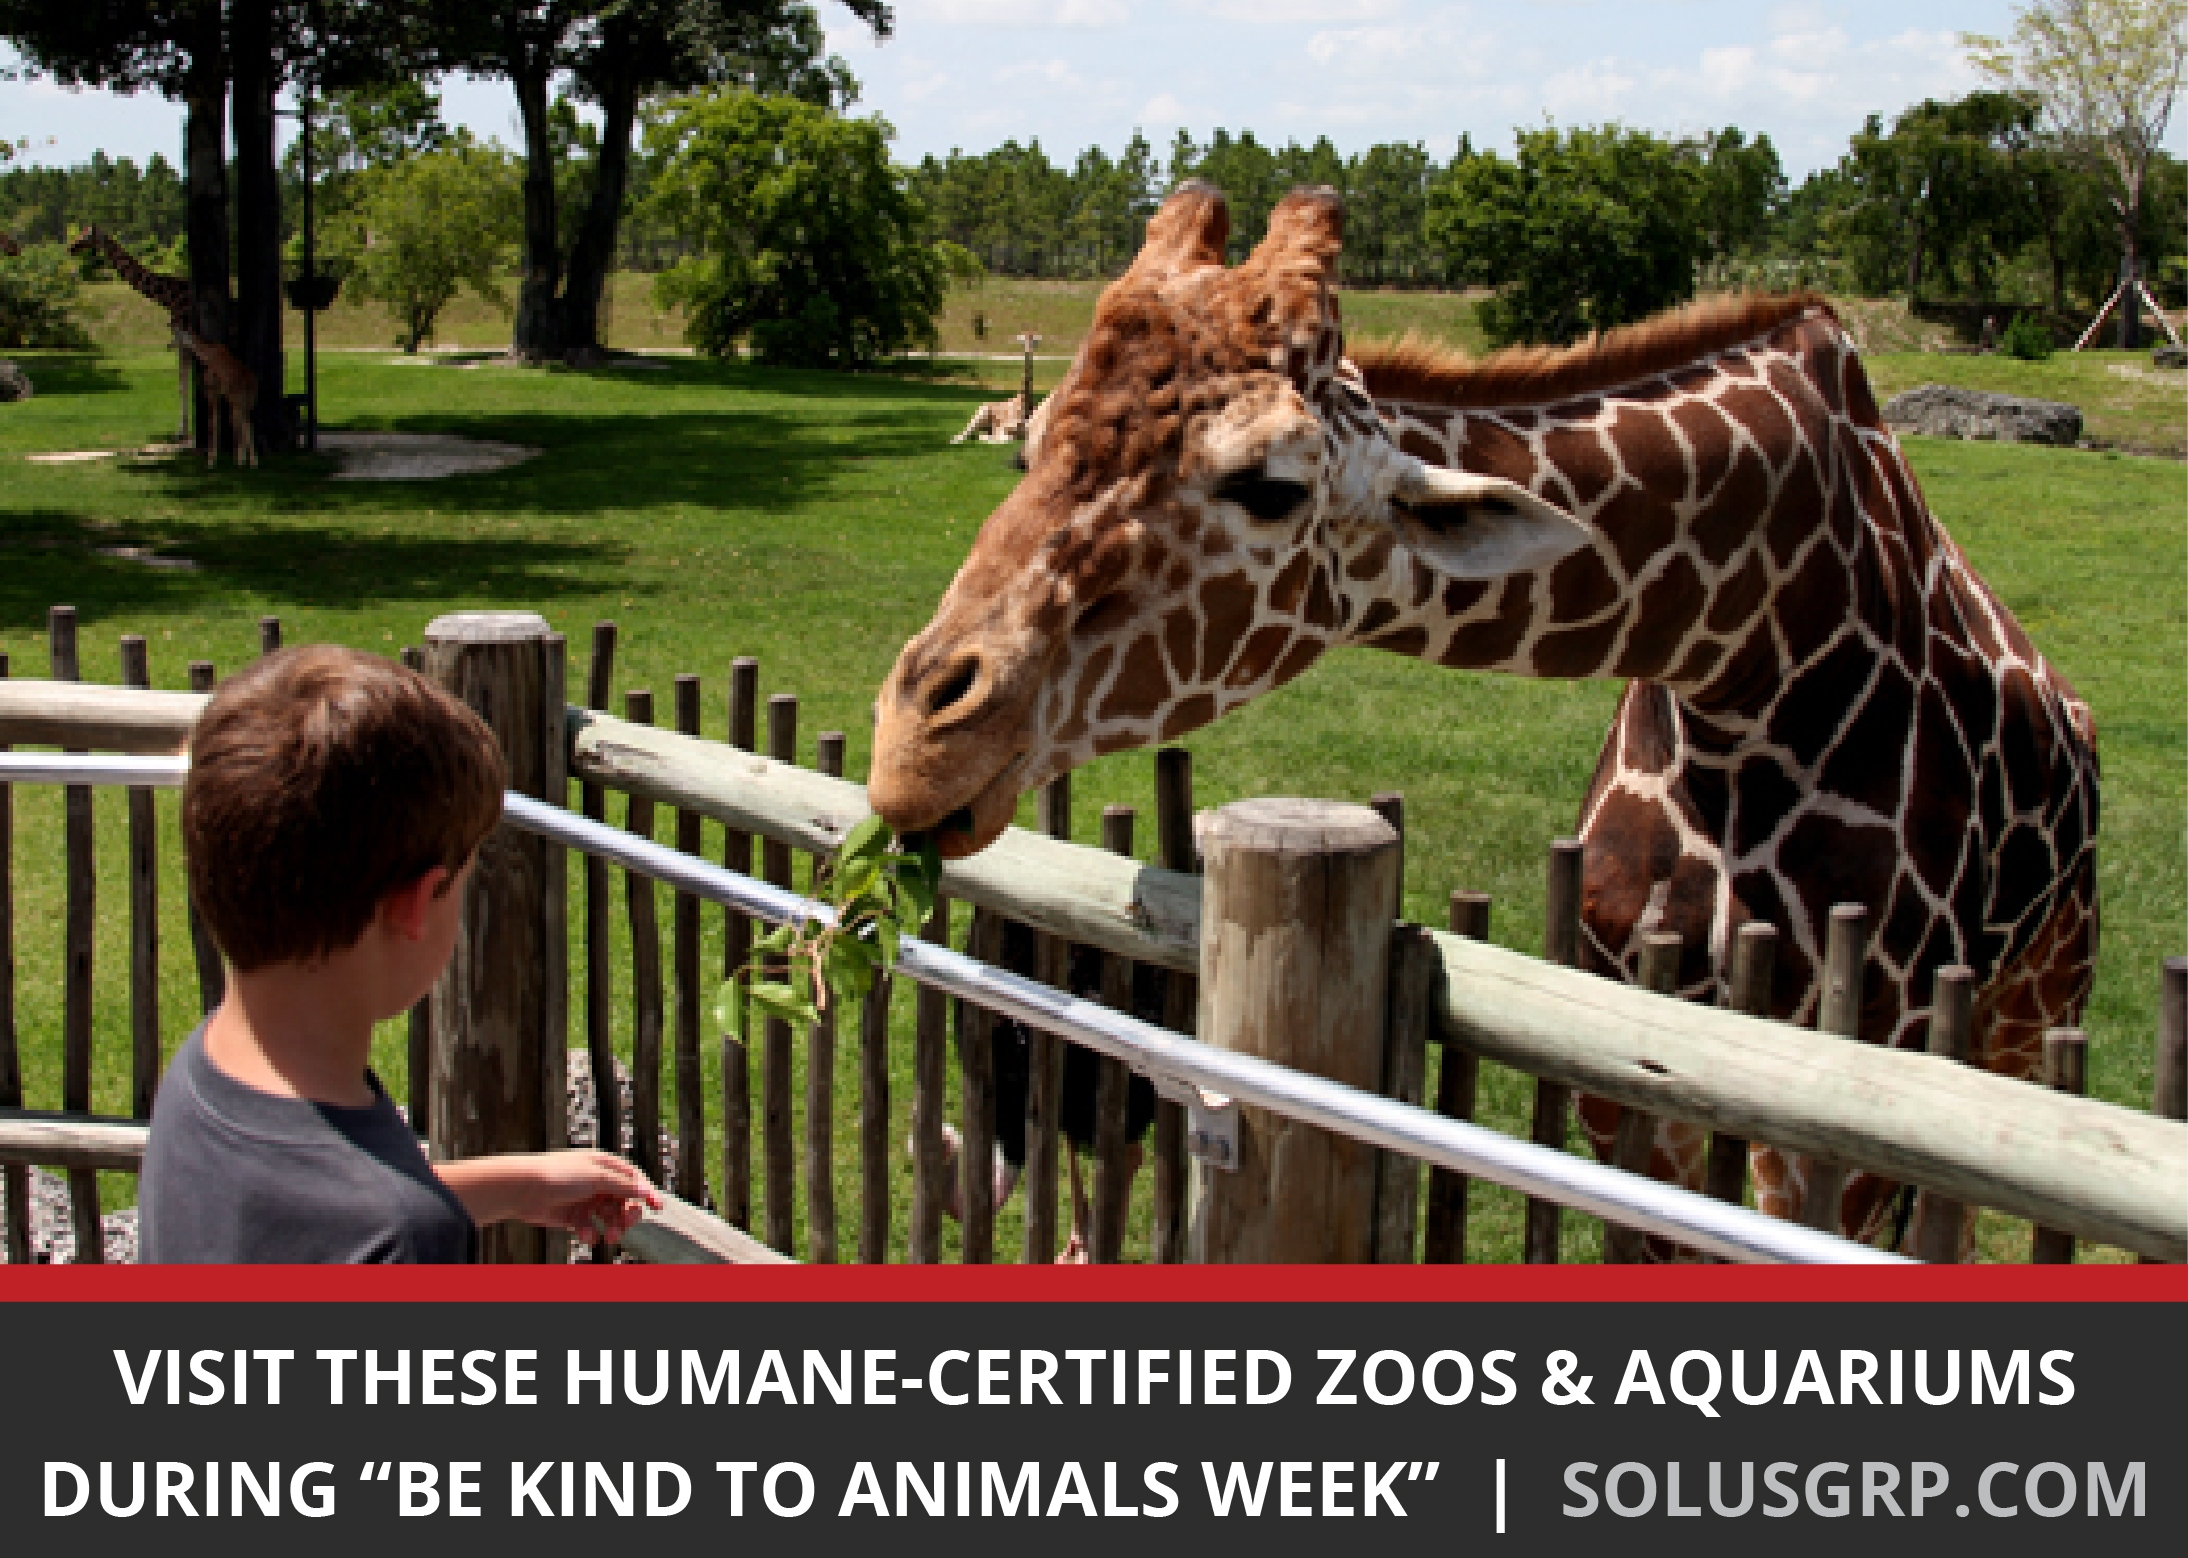 Visit These Humane-Certified Zoos and Aquariums During